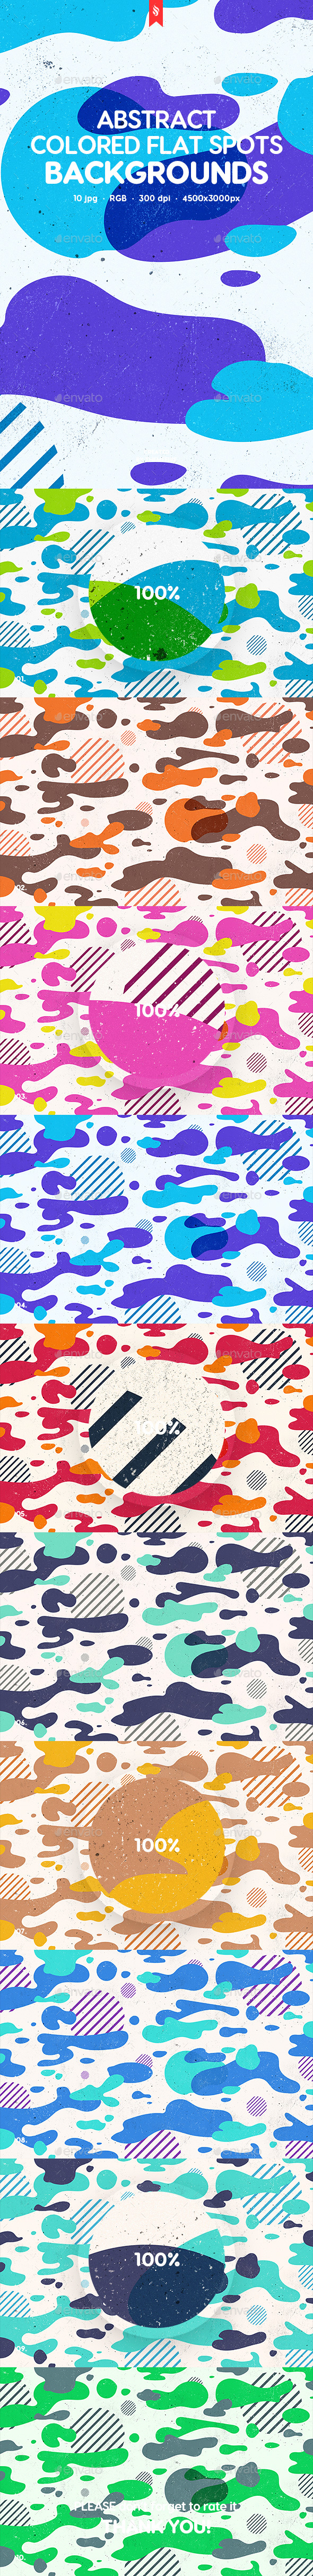 Abstract Spots Backgrounds - Abstract Backgrounds